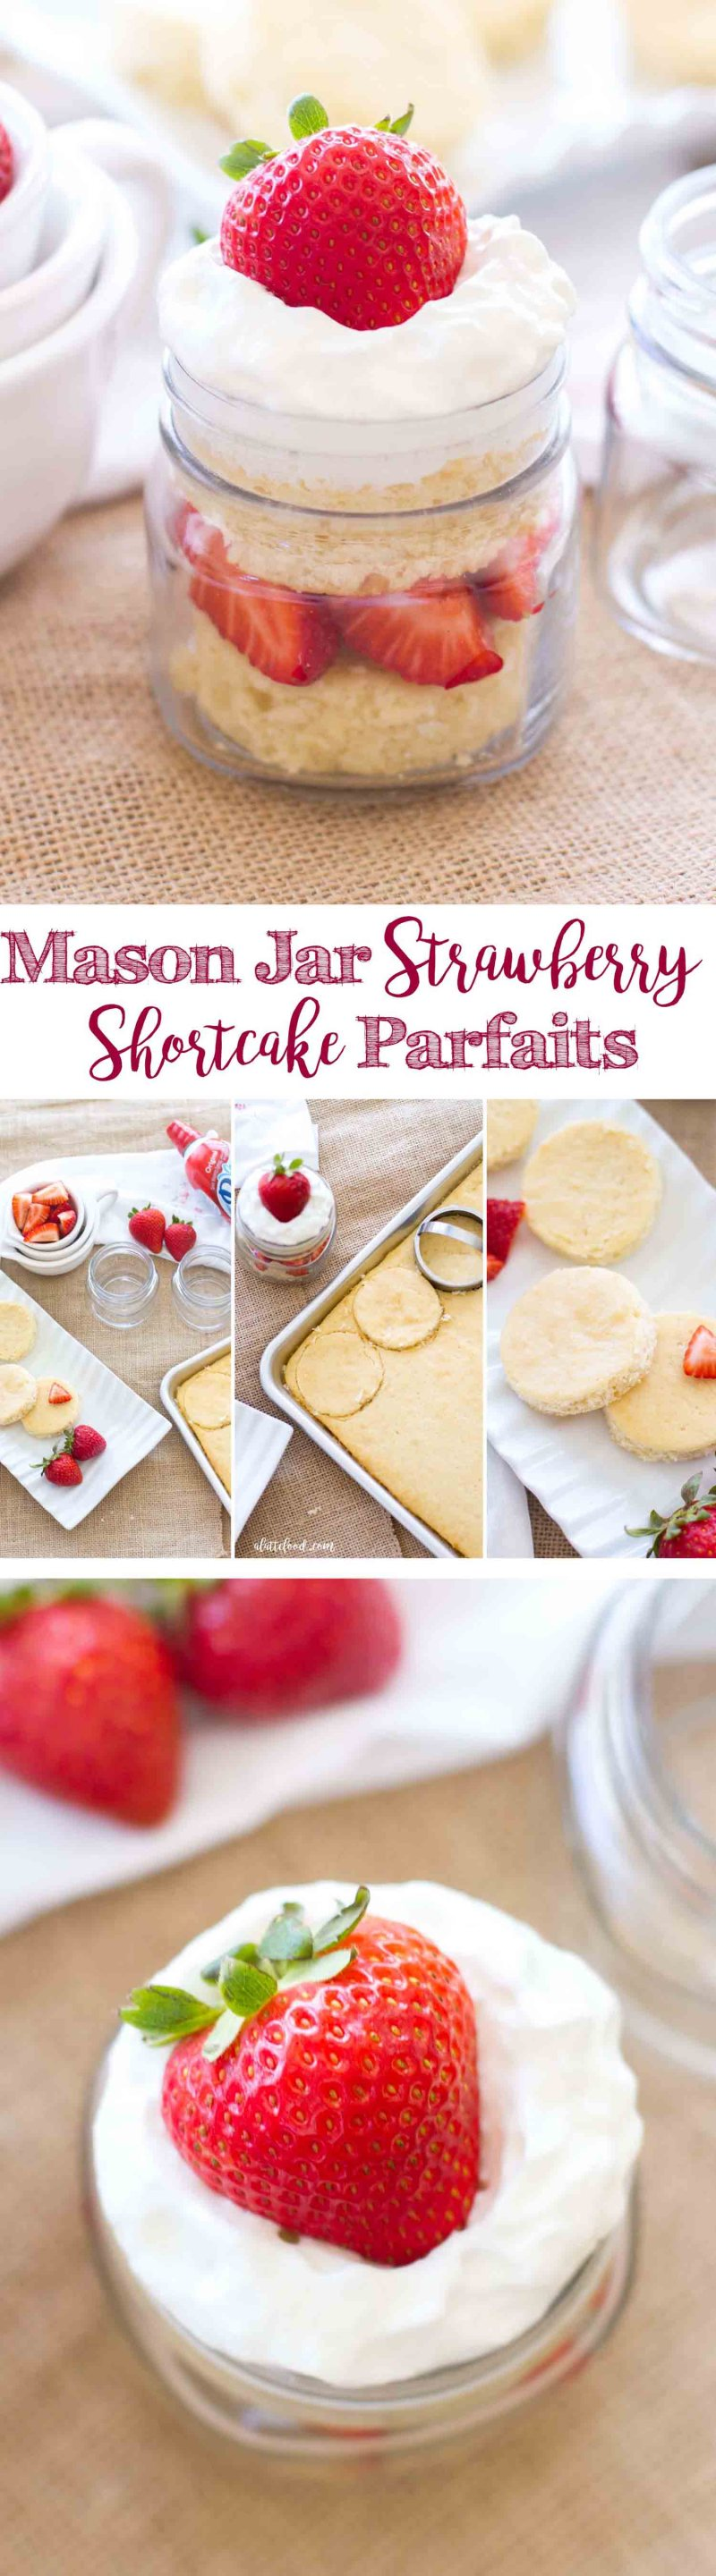 These homemade Mason Jar Strawberry Shortcake Parfaits are cute, portable, and the perfect summer dessert! This easy summer dessert recipe is made with homemade shortcake, fresh strawberries, and whipped cream (homemade whipped cream or store-bought is fine). These cute strawberry shortcakes are a family favorite!